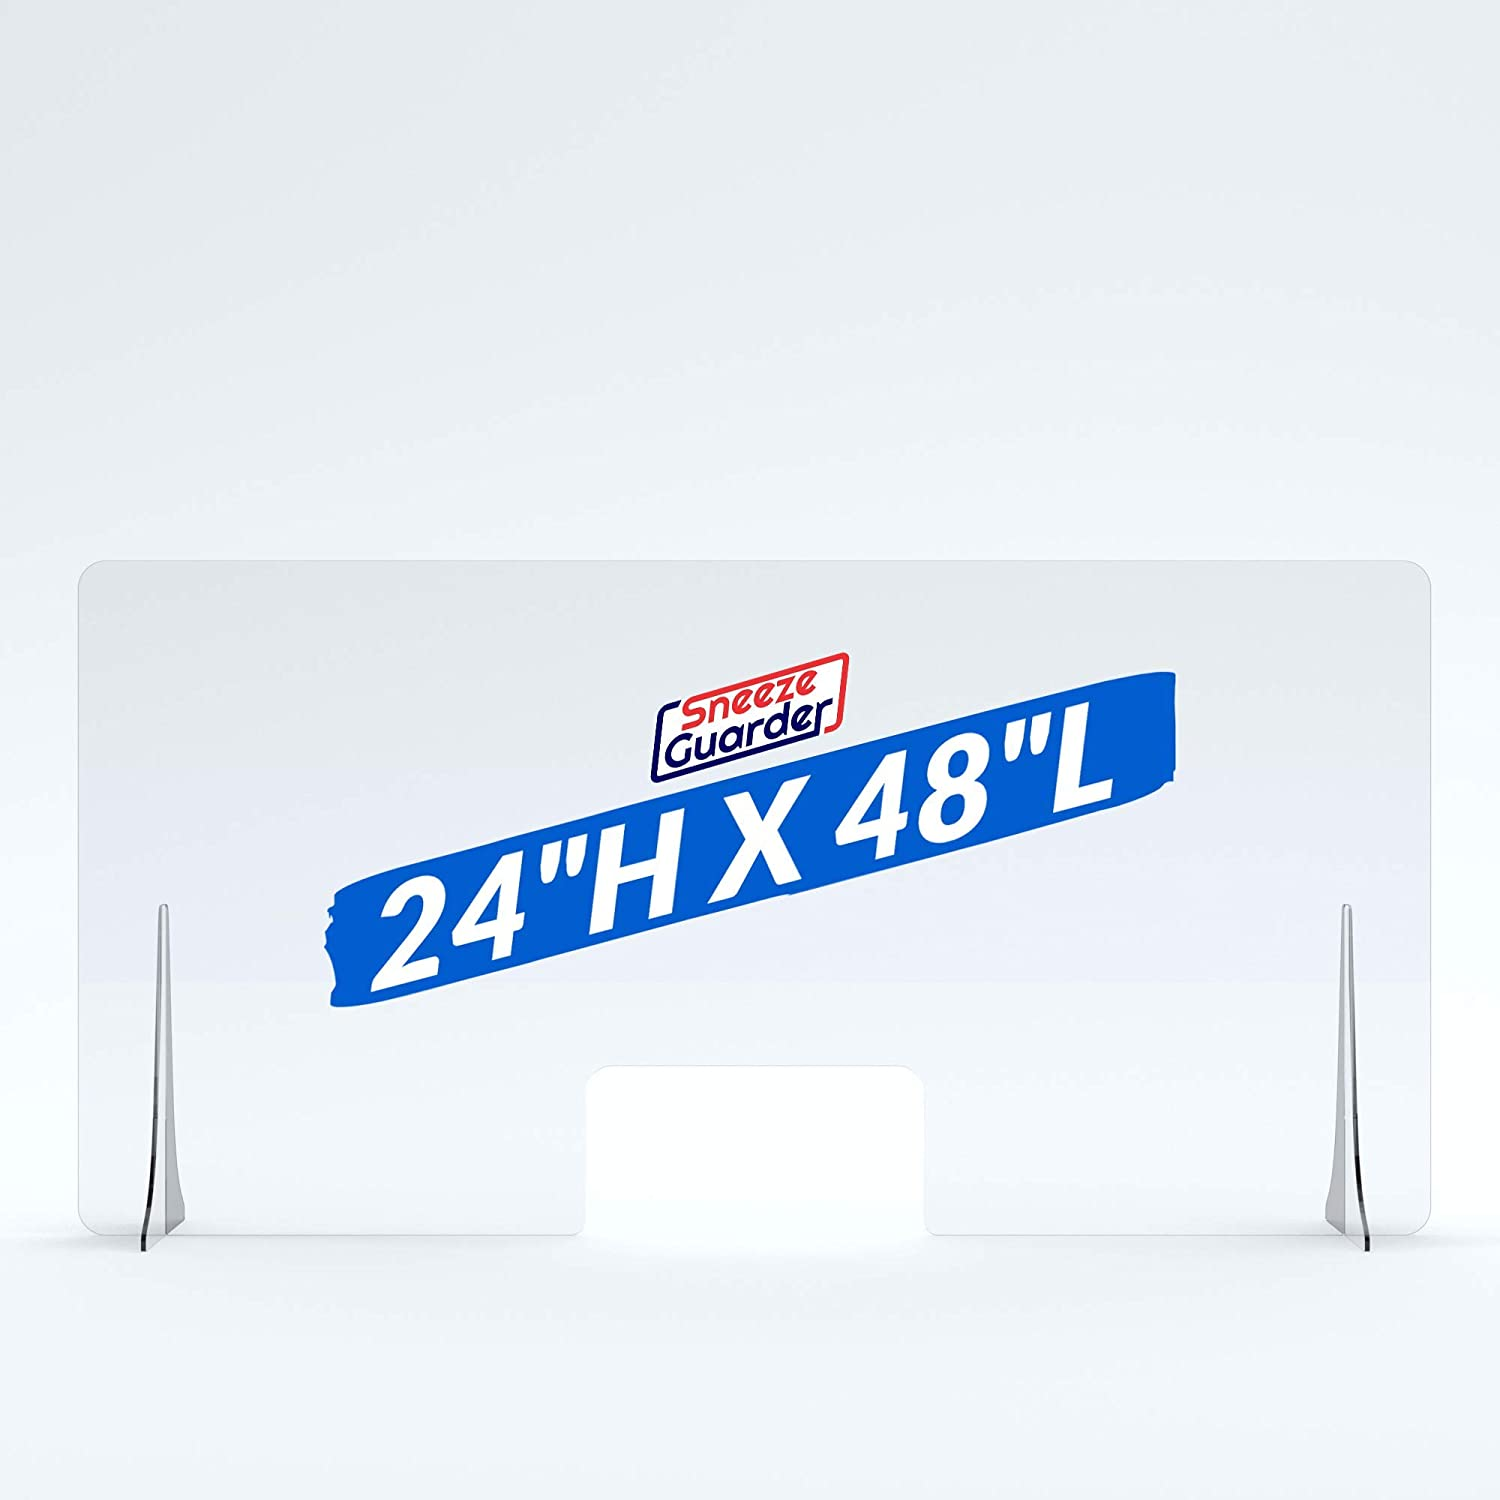 """20+ Sizes Available 48x30 Ships Fast 48/""""L x 30/""""H XL 30/""""H x 48/""""L Plexiglass Sneeze Guard for Desk Counter with Double-Side Tape Base Stabilizers"""